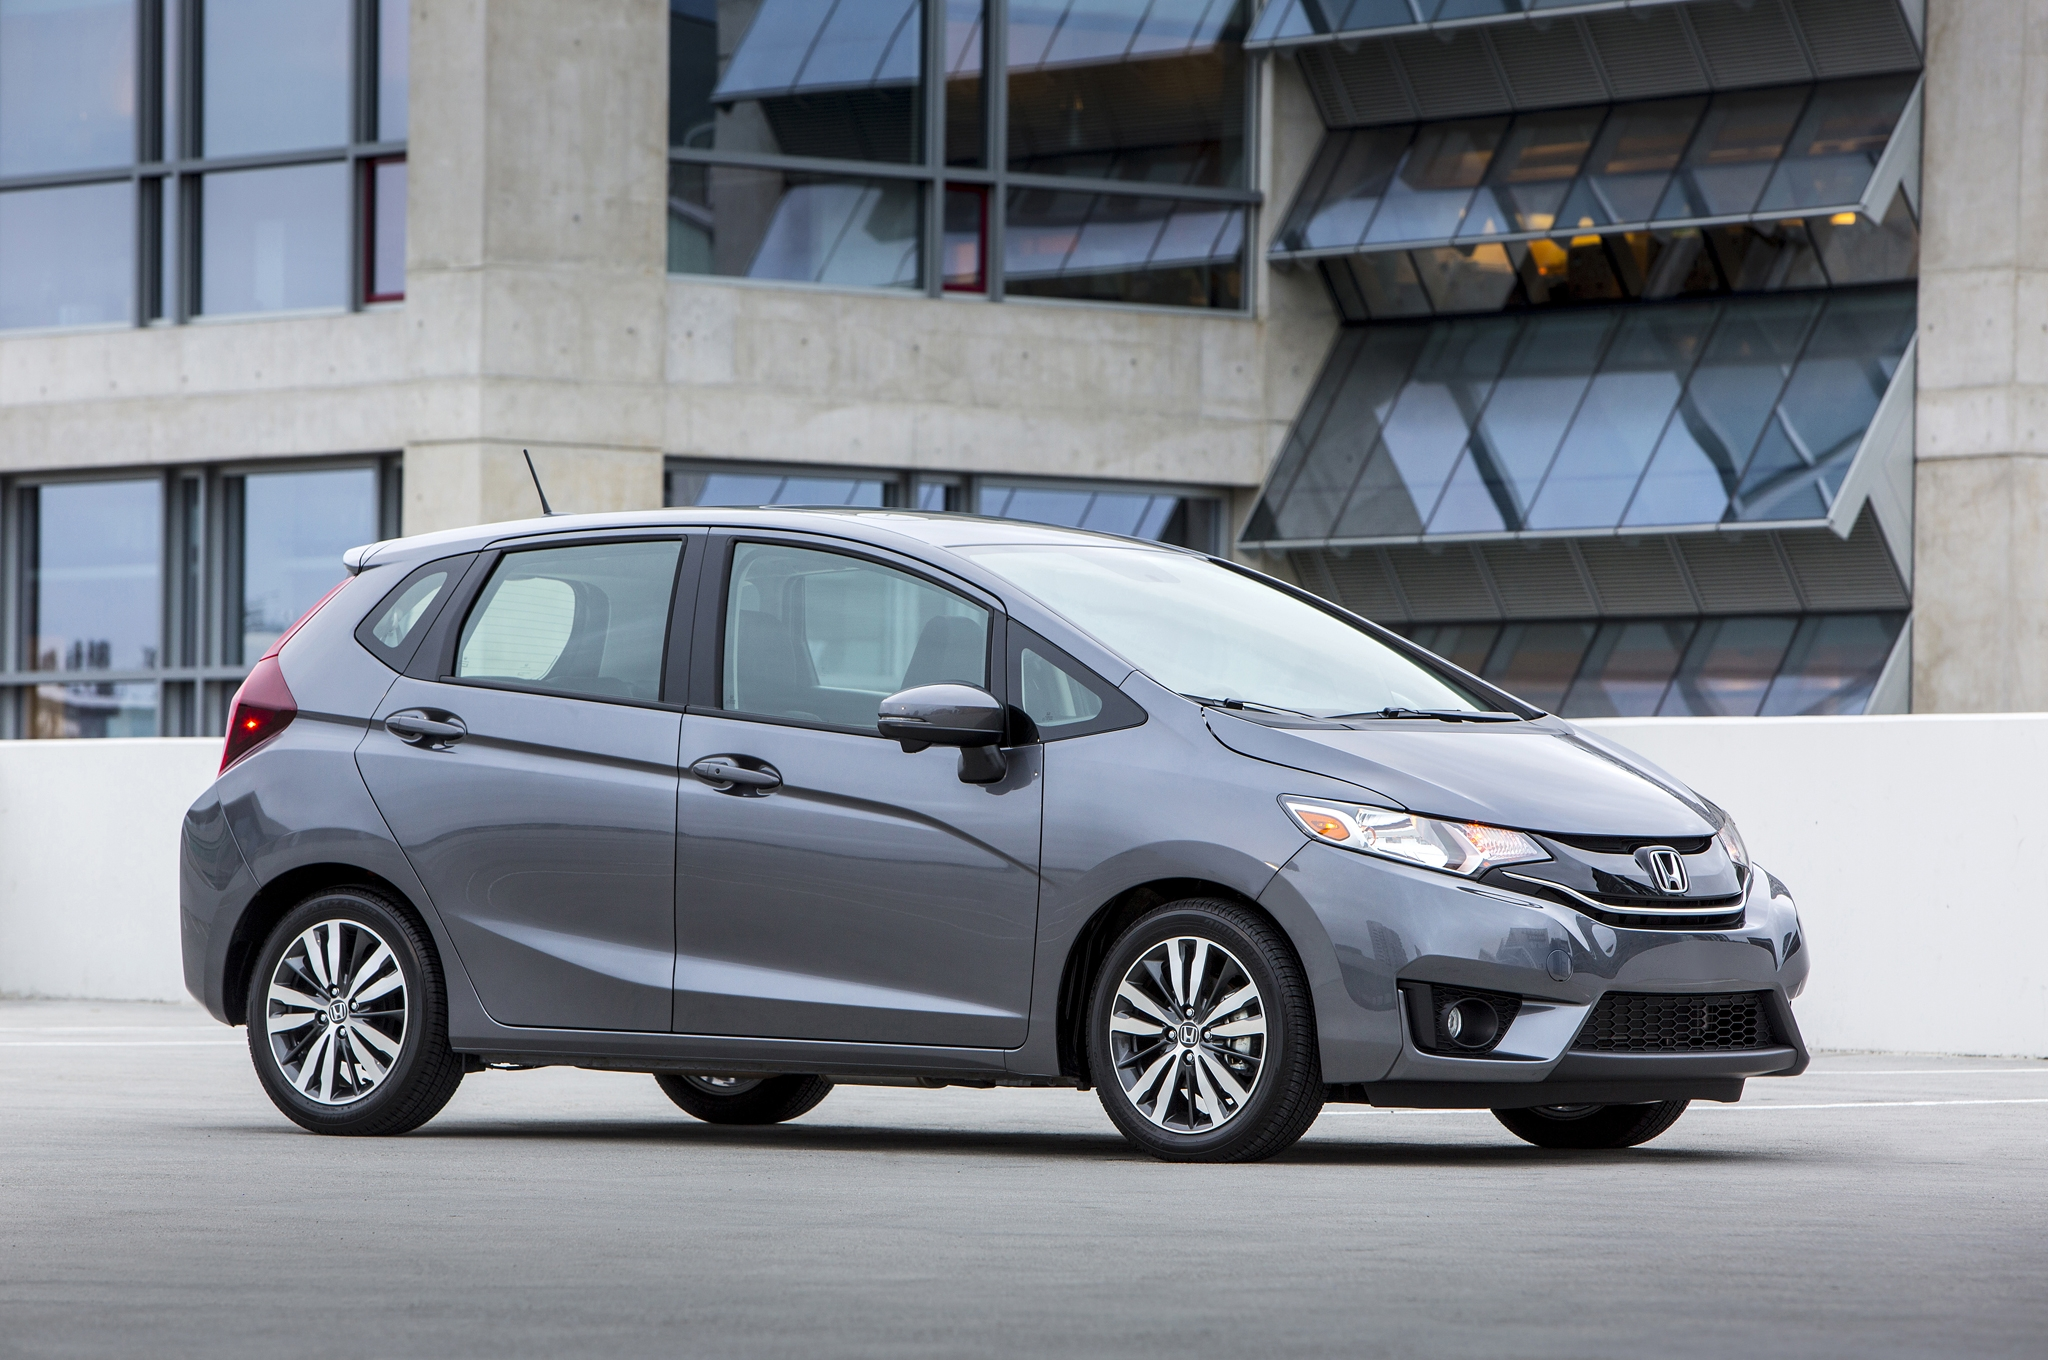 2015 Honda Fit Grey Side View (View 6 of 16)